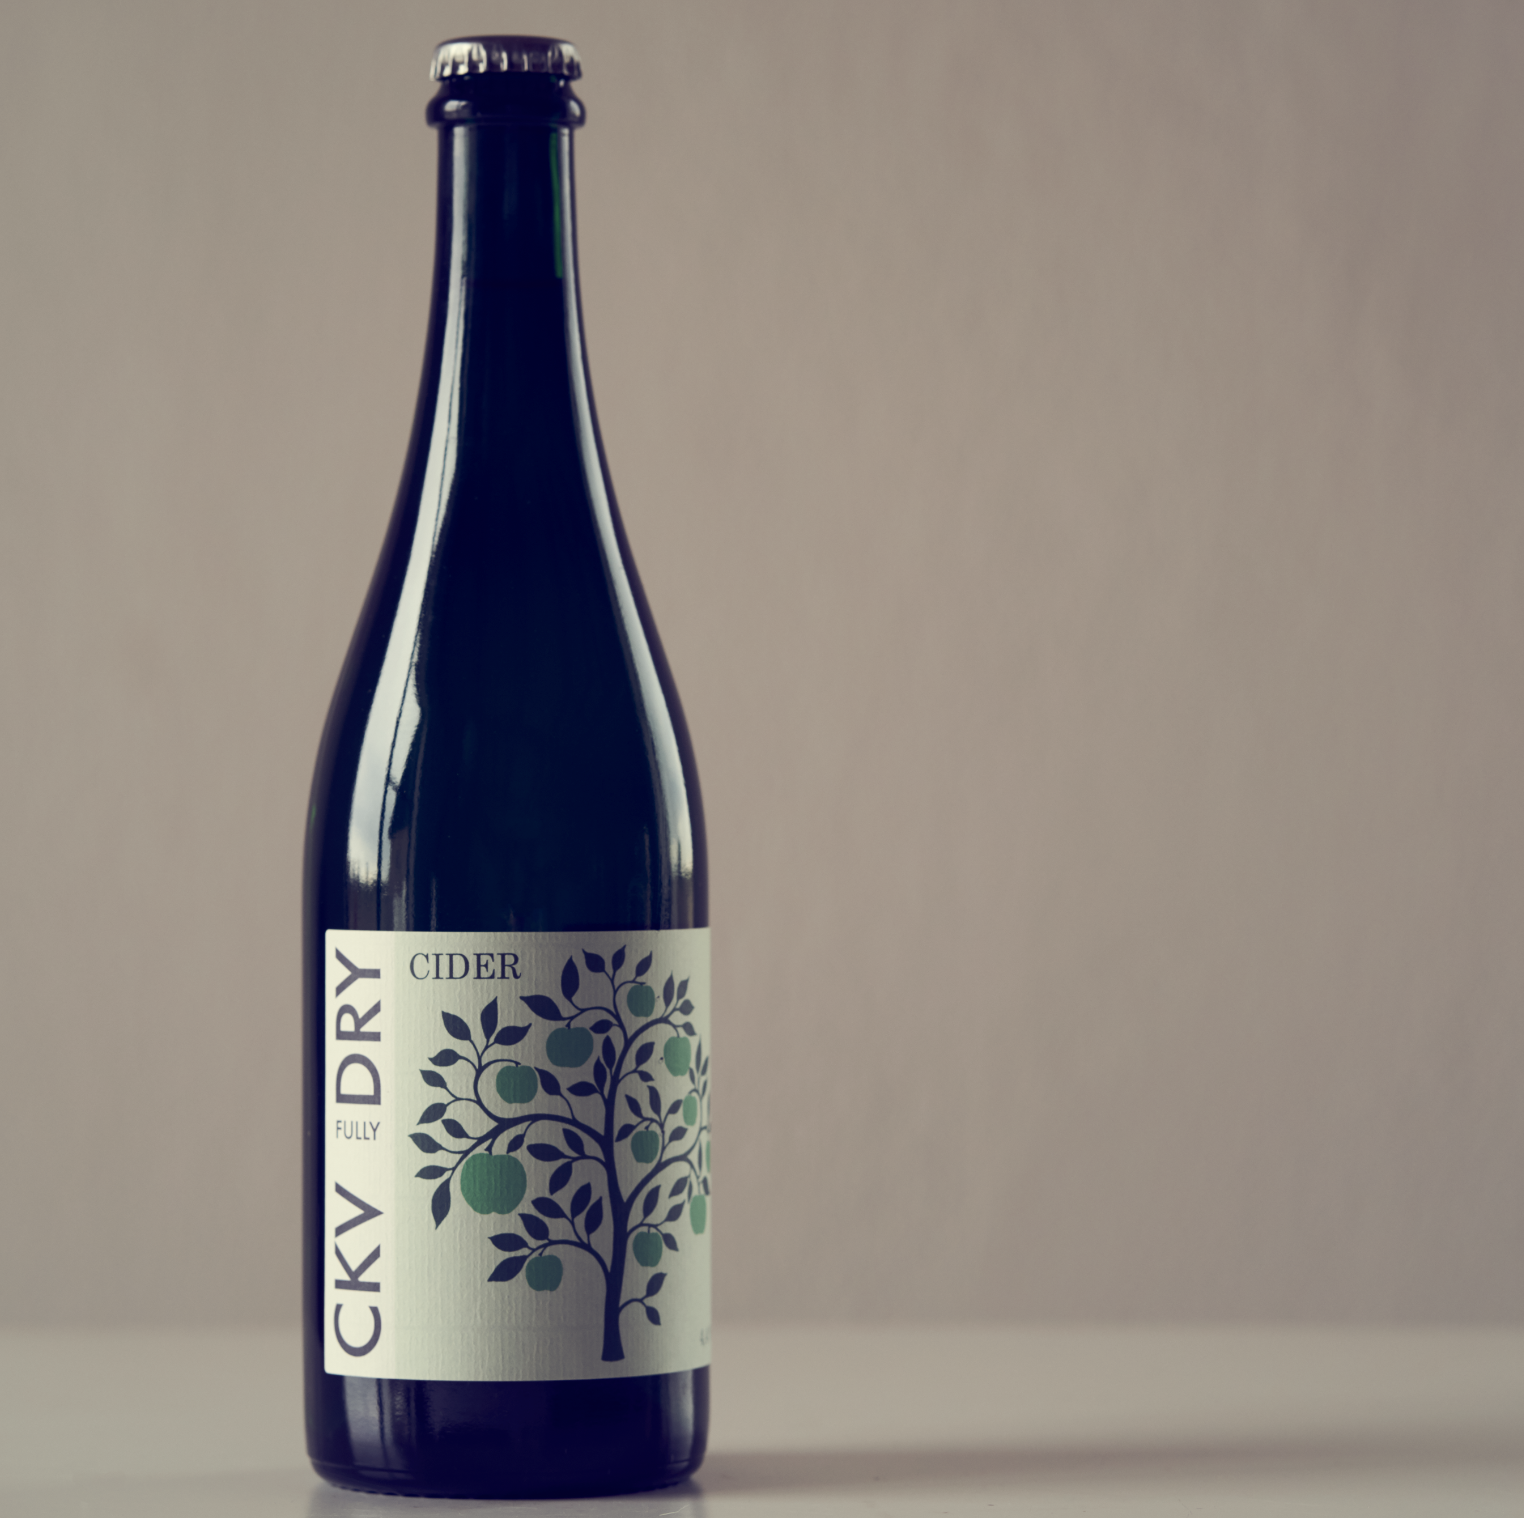 Launching our cider CKV Dry, art#31760